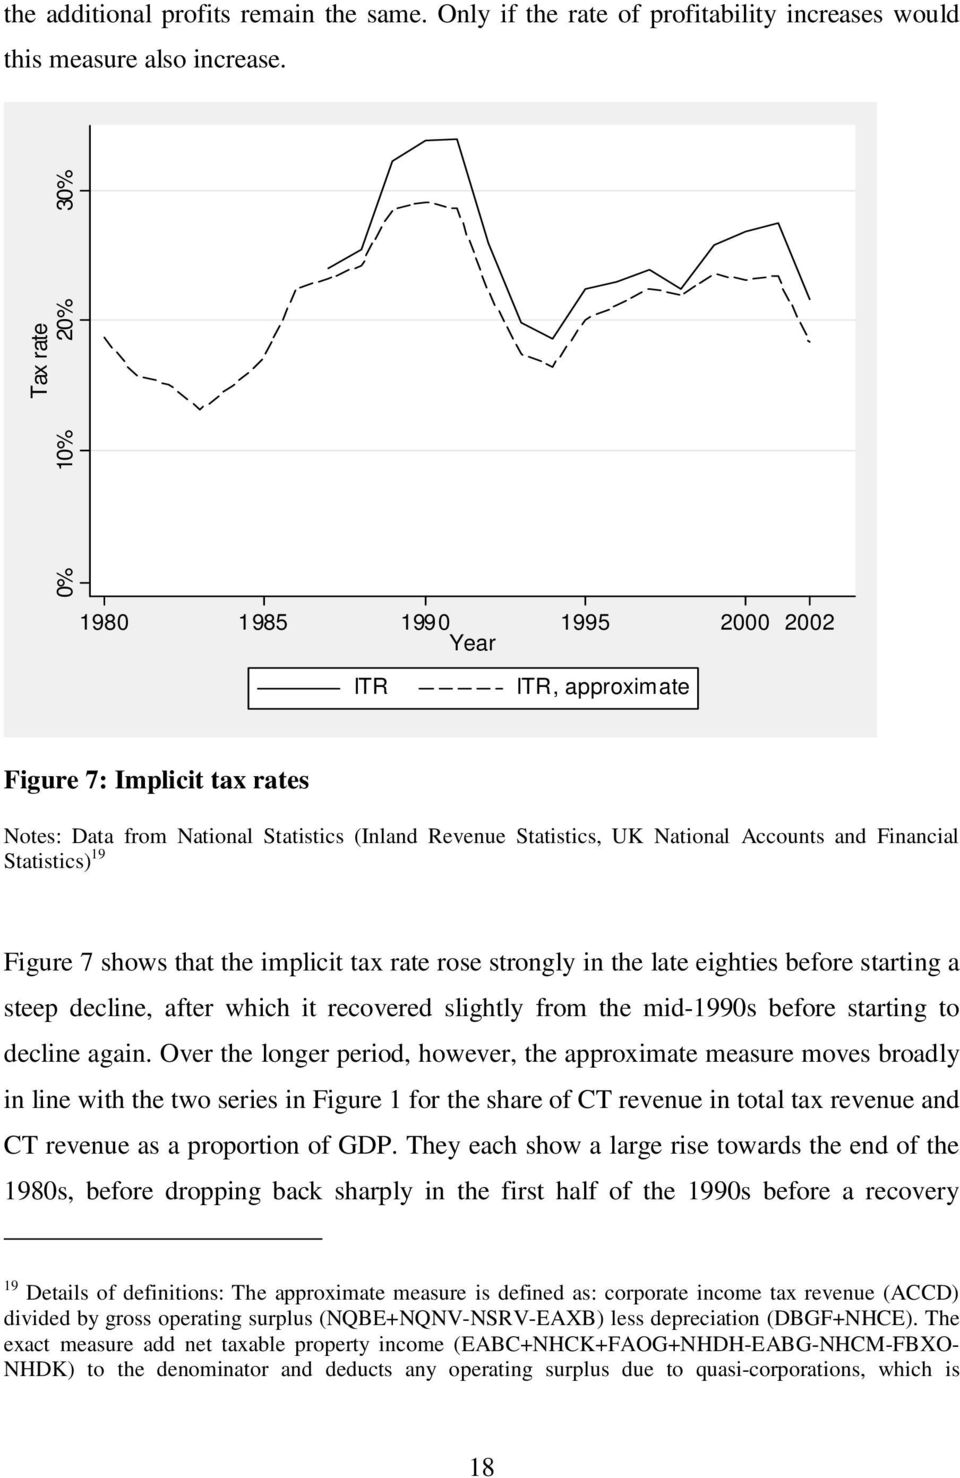 Financial Statistics) 19 Figure 7 shows that the implicit tax rate rose strongly in the late eighties before starting a steep decline, after which it recovered slightly from the mid-1990s before